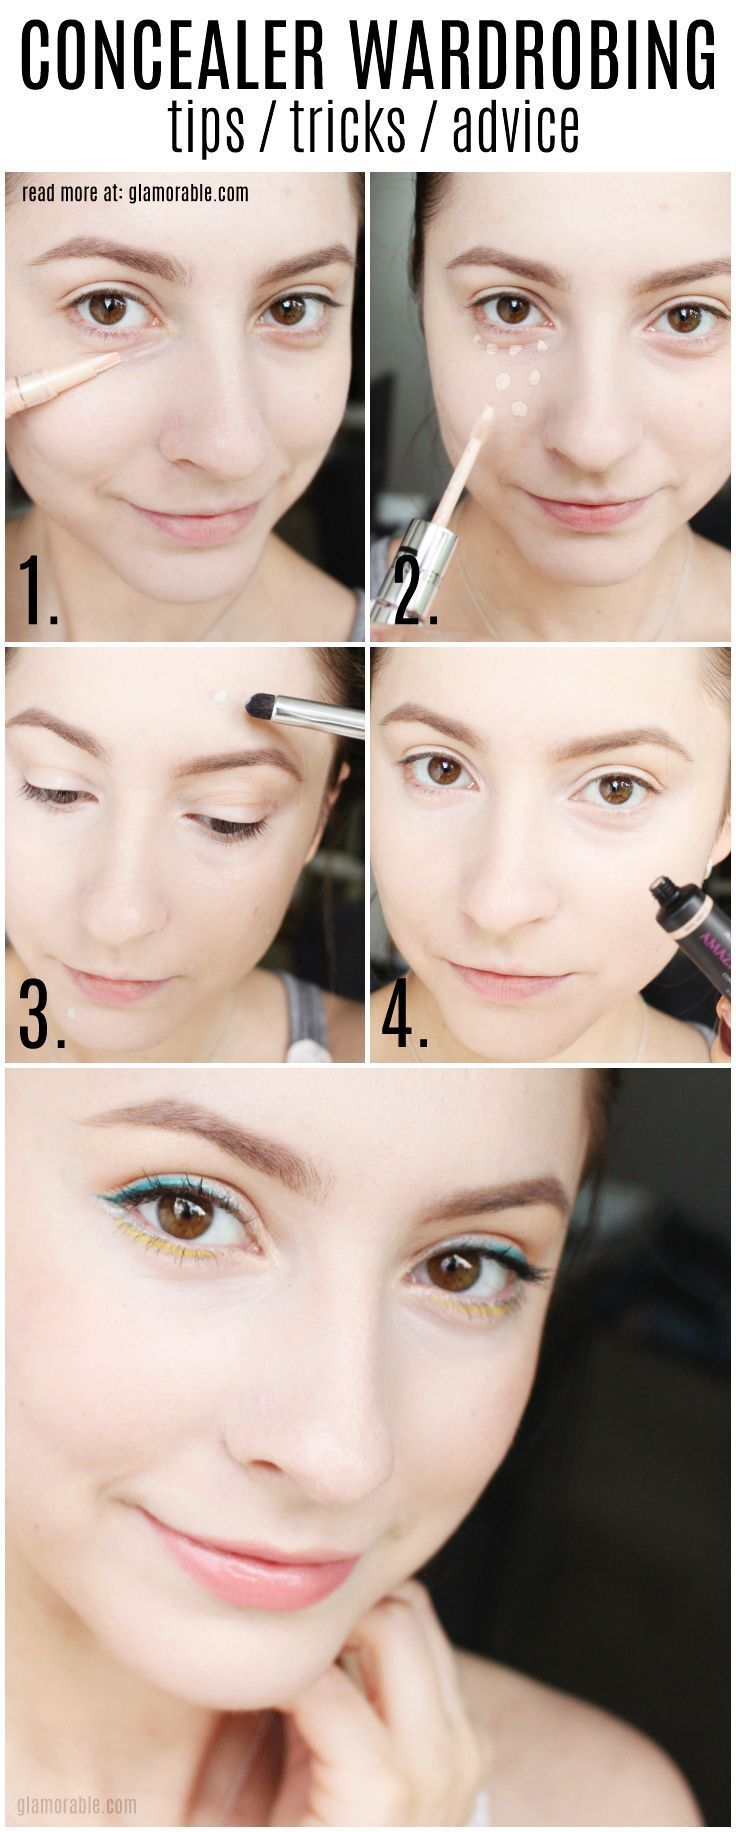 Concealer wardrobing is one of the hottest beauty trends, loved by Hollywood celebrities, fashionistas, and runway models. Click through to find out what it is and how to do it right! (concealer tutorial, how to conceal dark circles, makeup tutorial) Read